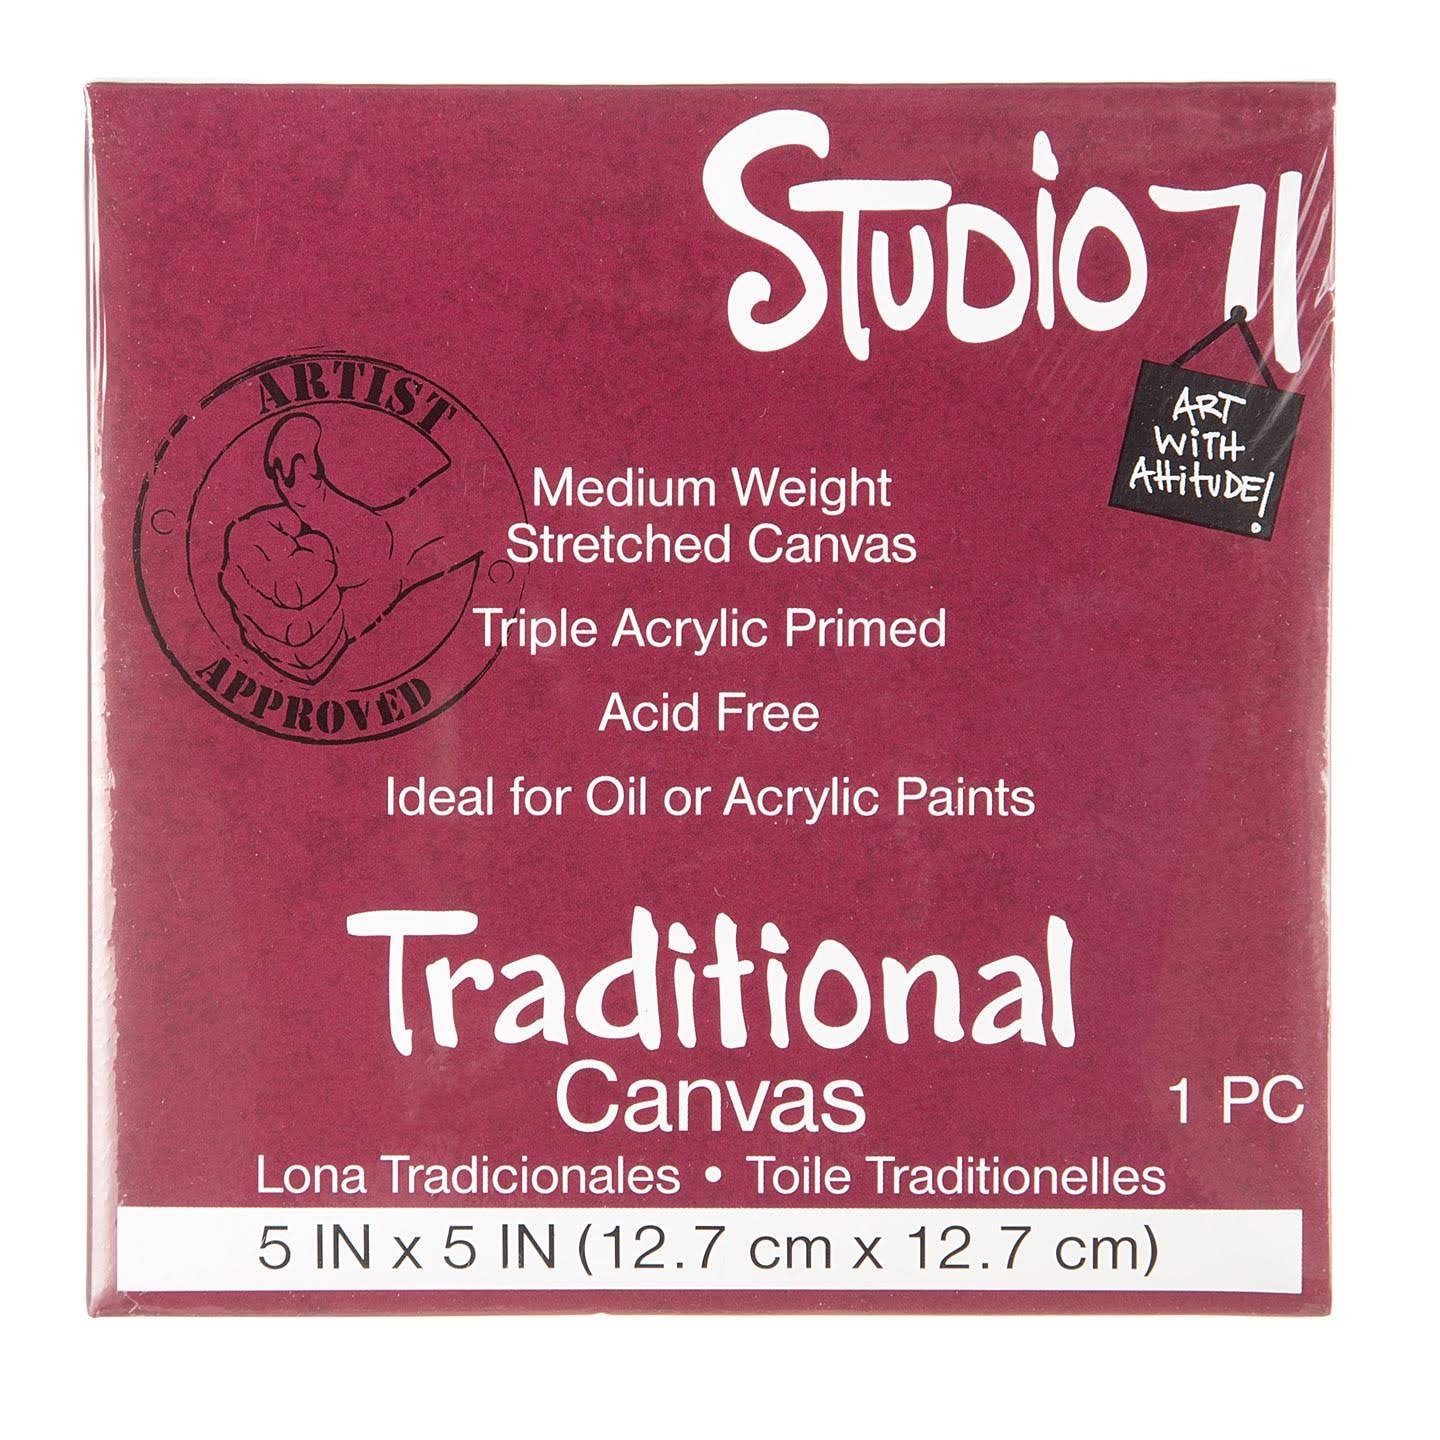 "Studio 71 Small Stretched Canvas Medium Weight Primed 5"" x 5"""